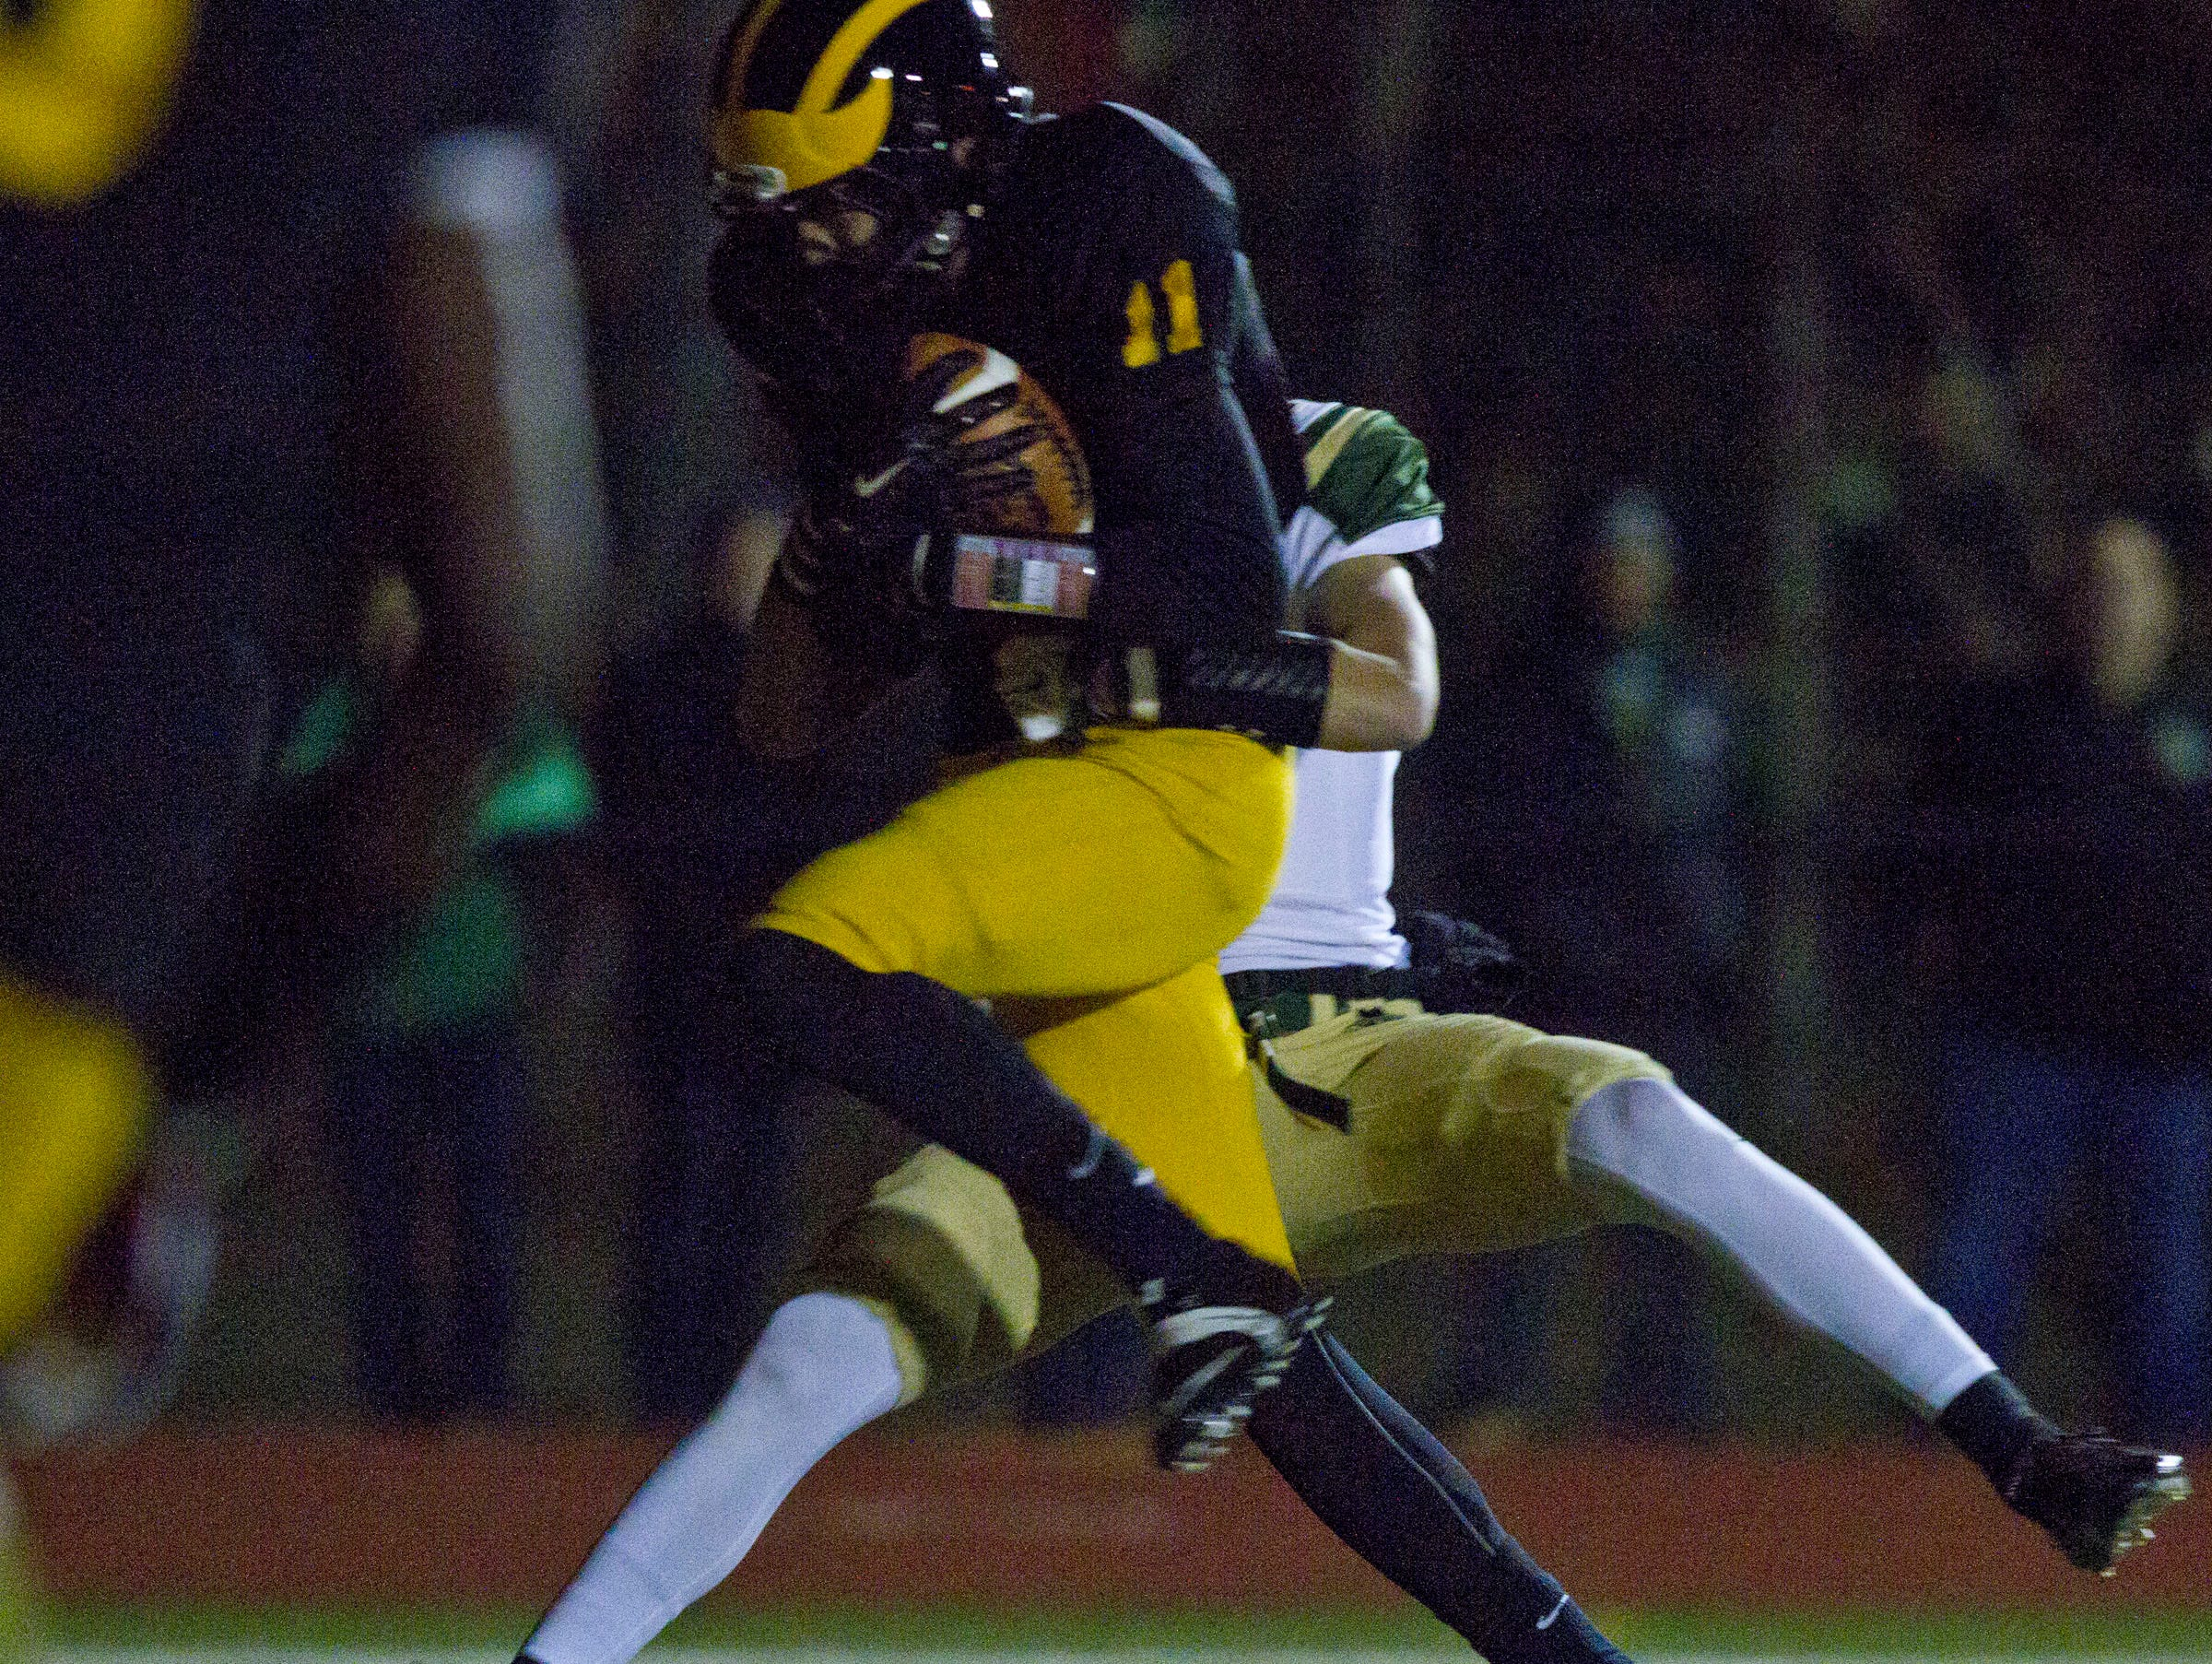 SJV's Michael Stapert makes a touchdown reception. Defending is Red Bank Catholic's Max Hazard. Red Bank Catholic vs St. John Vianney Non-Public Group III semifinal football game. Holmdel, NJ Friday, November 20, 2015 @dhoodhood